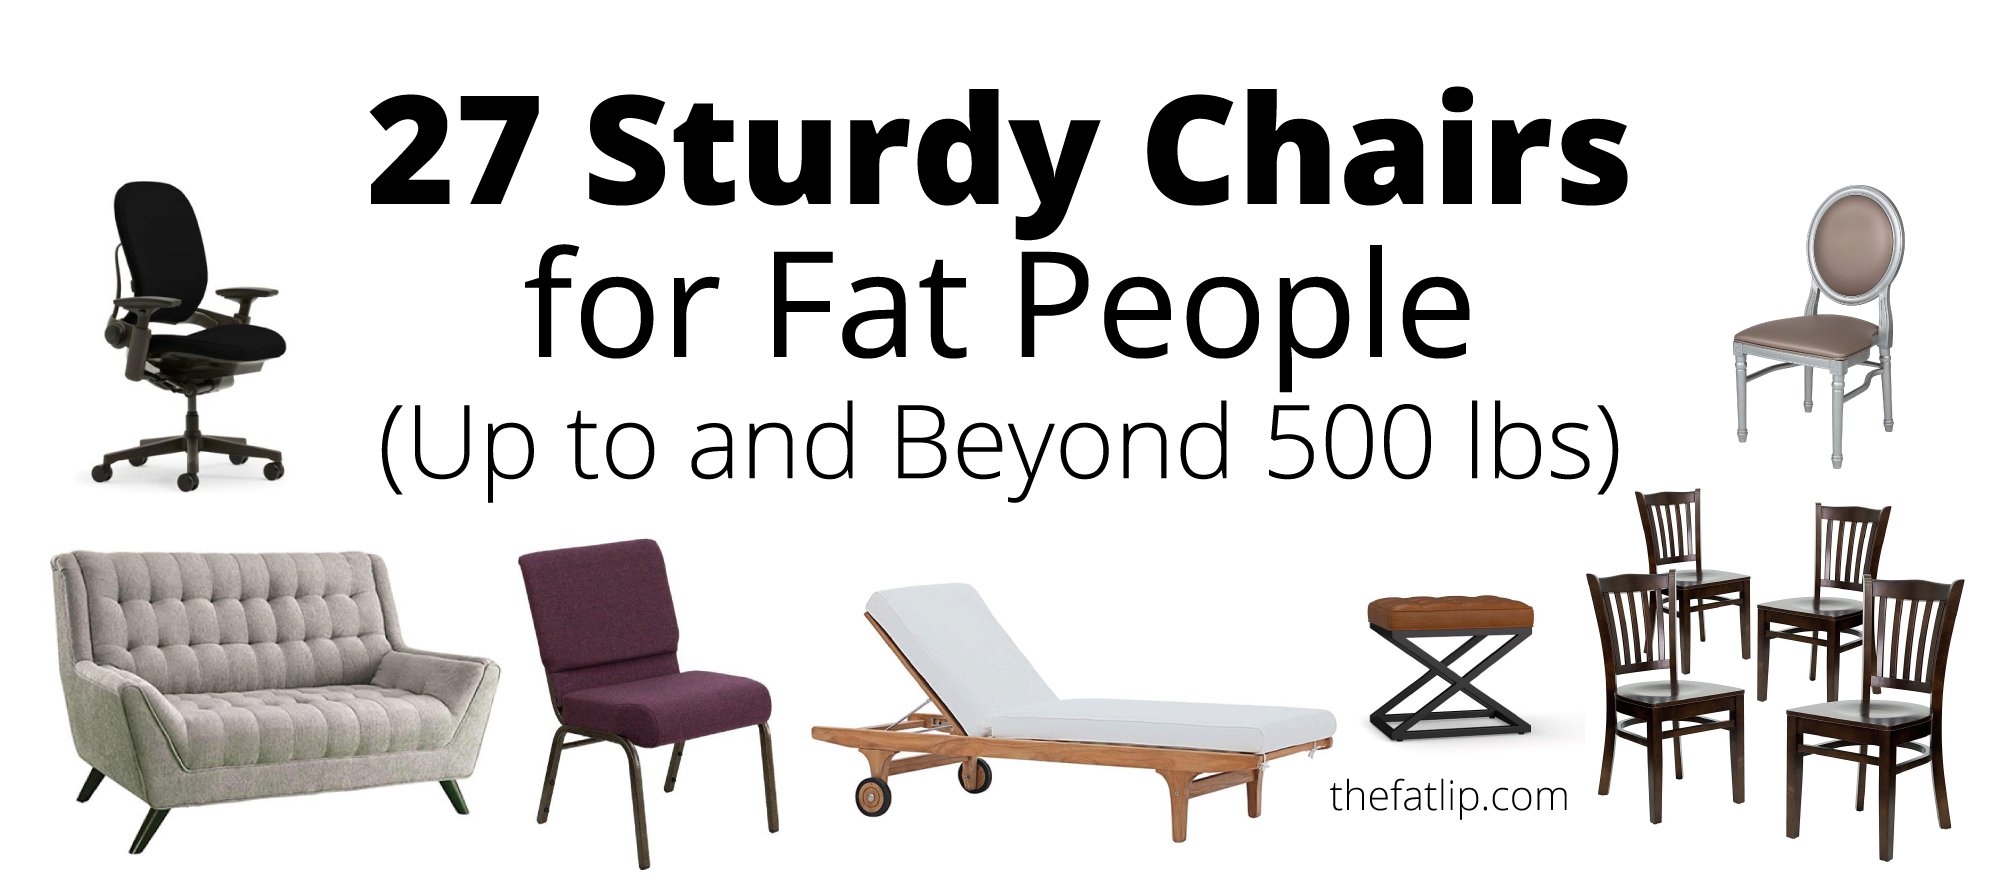 27 sturdy chairs for fat people by Ash of thefatlip.com